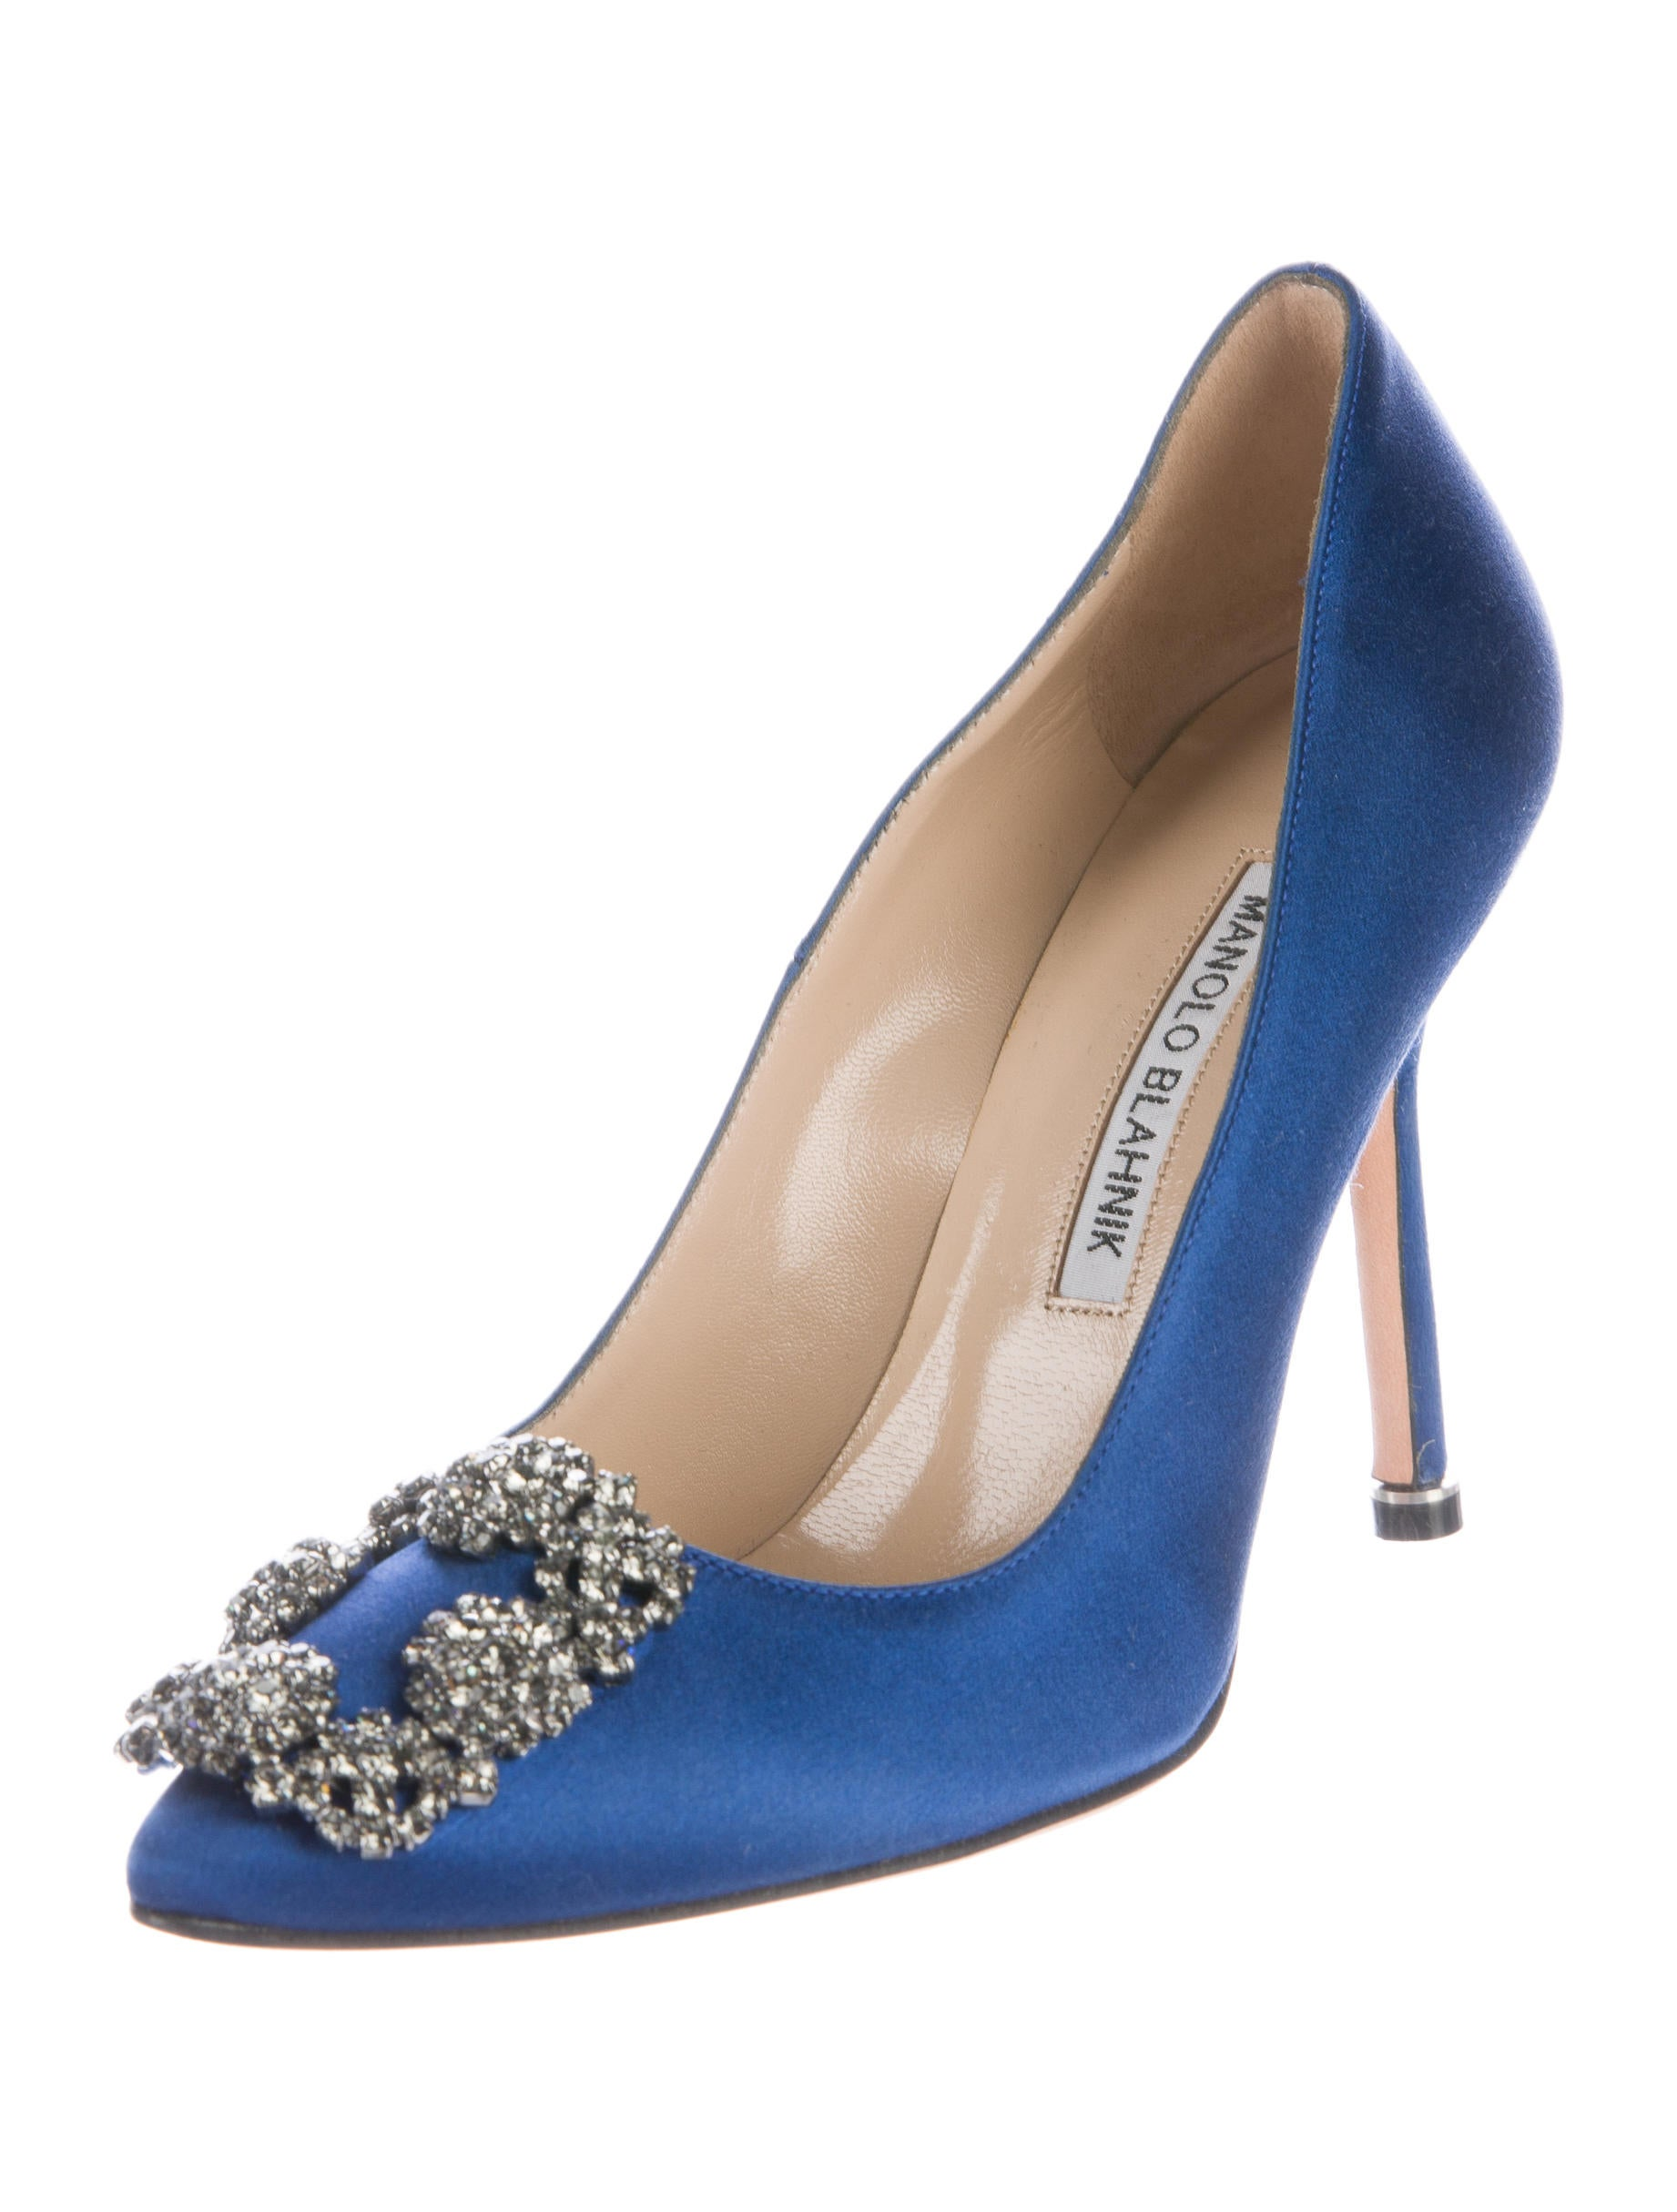 Manolo blahnik hangisi satin pumps shoes moo68107 for Shoes by manolo blahnik